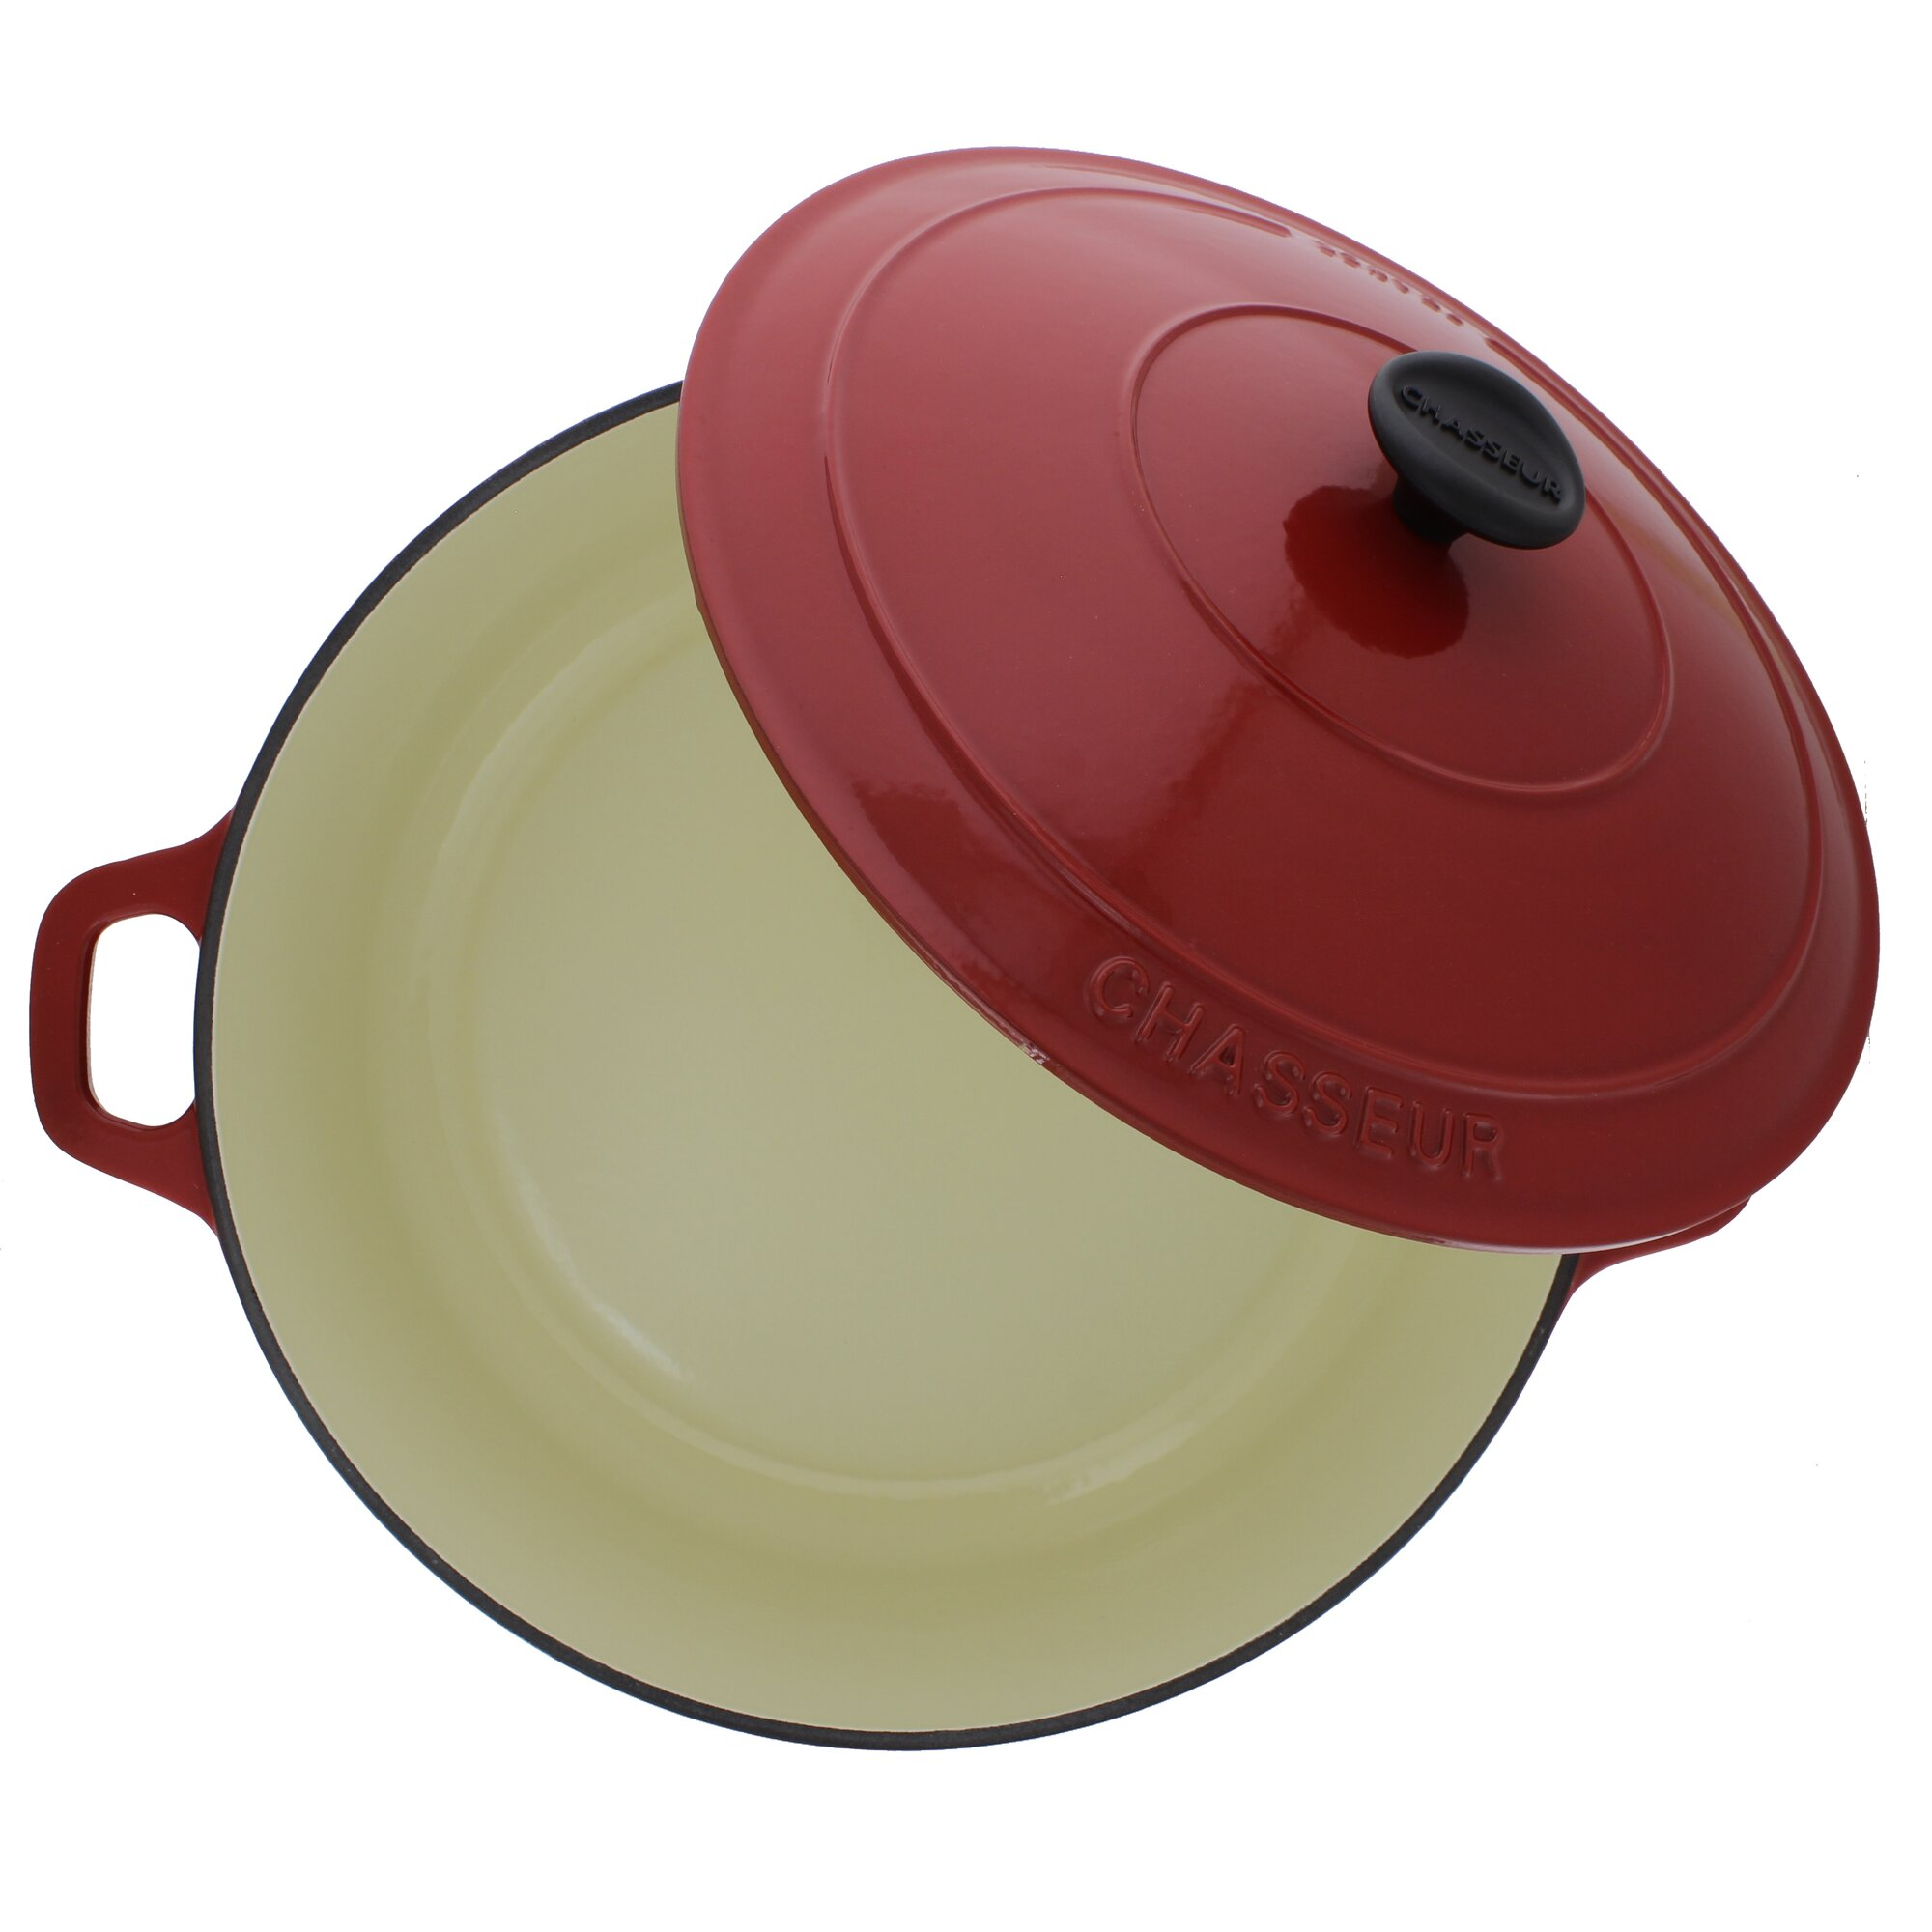 Chasseur Chasseur 7.1-quart Red French Enameled Cast Iron Round ...